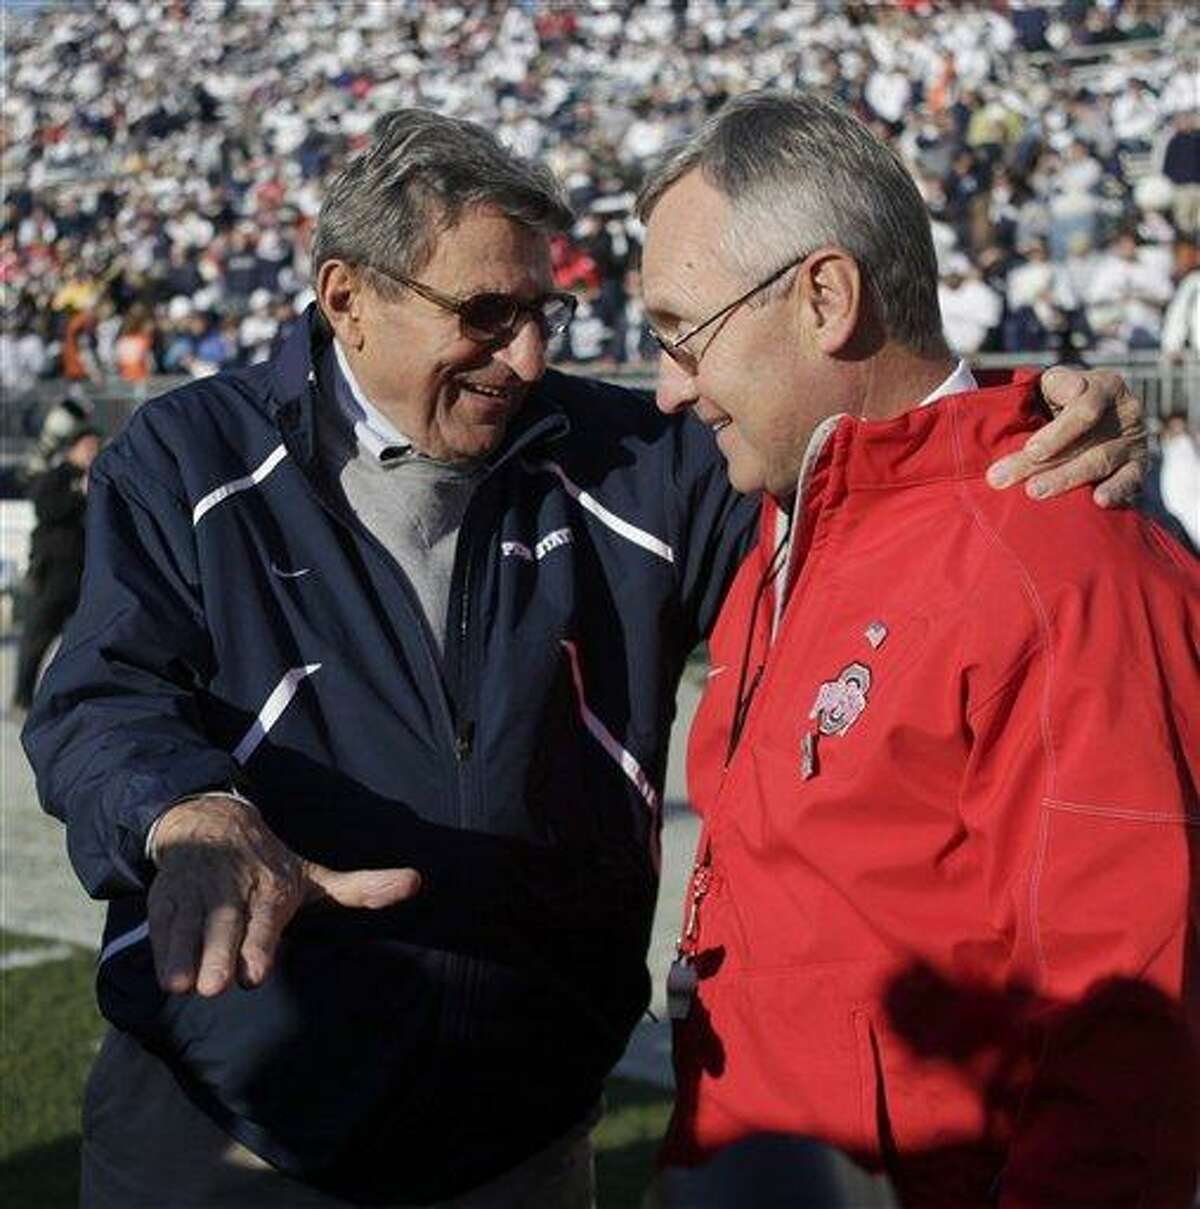 FILE - In this Nov. 7, 2009 file photo, Penn State head coach Joe Paterno, left, chats with Ohio State head coach Jim Tressel, right, before the start of their NCAA college football game in State College, Pa. A year ago, Penn State at Ohio State would have been a matchup of two of college football powers led by coaches with images beyond reproach. (AP Photo/Carolyn Kaster, File)